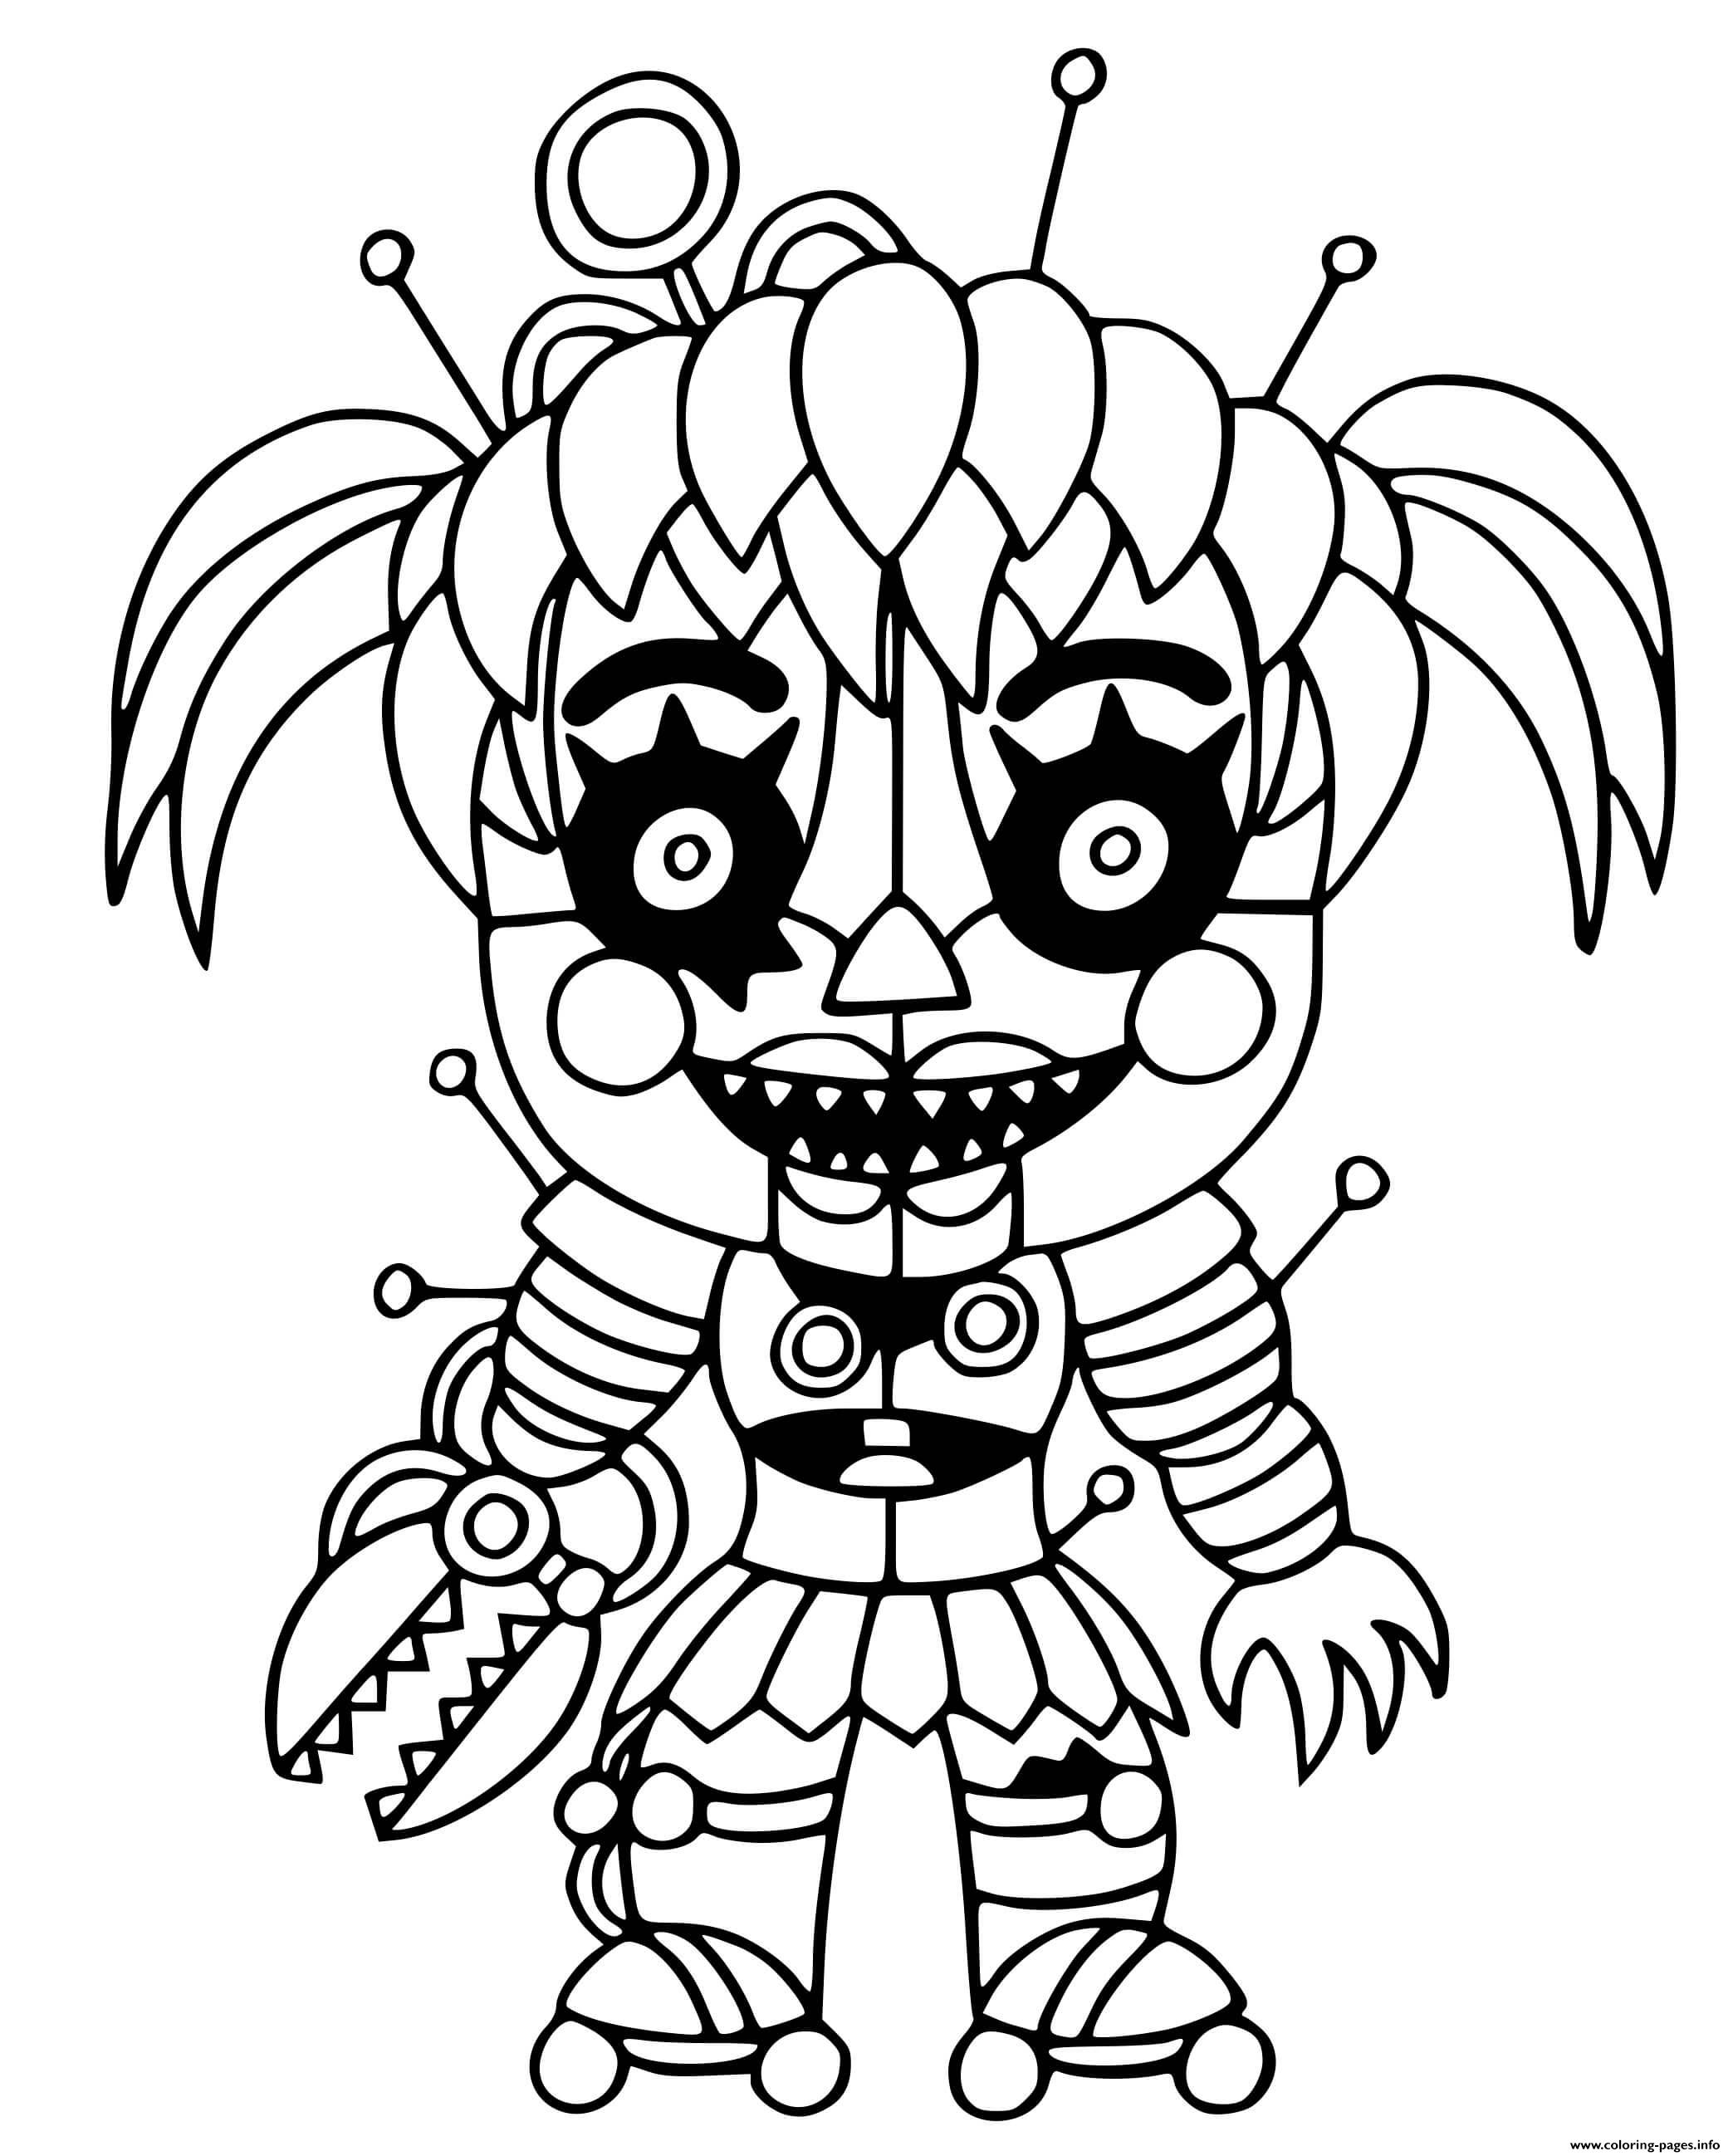 Fnaf Baby Coloring Pages : coloring, pages, Scrap, Coloring, Pages, Printable